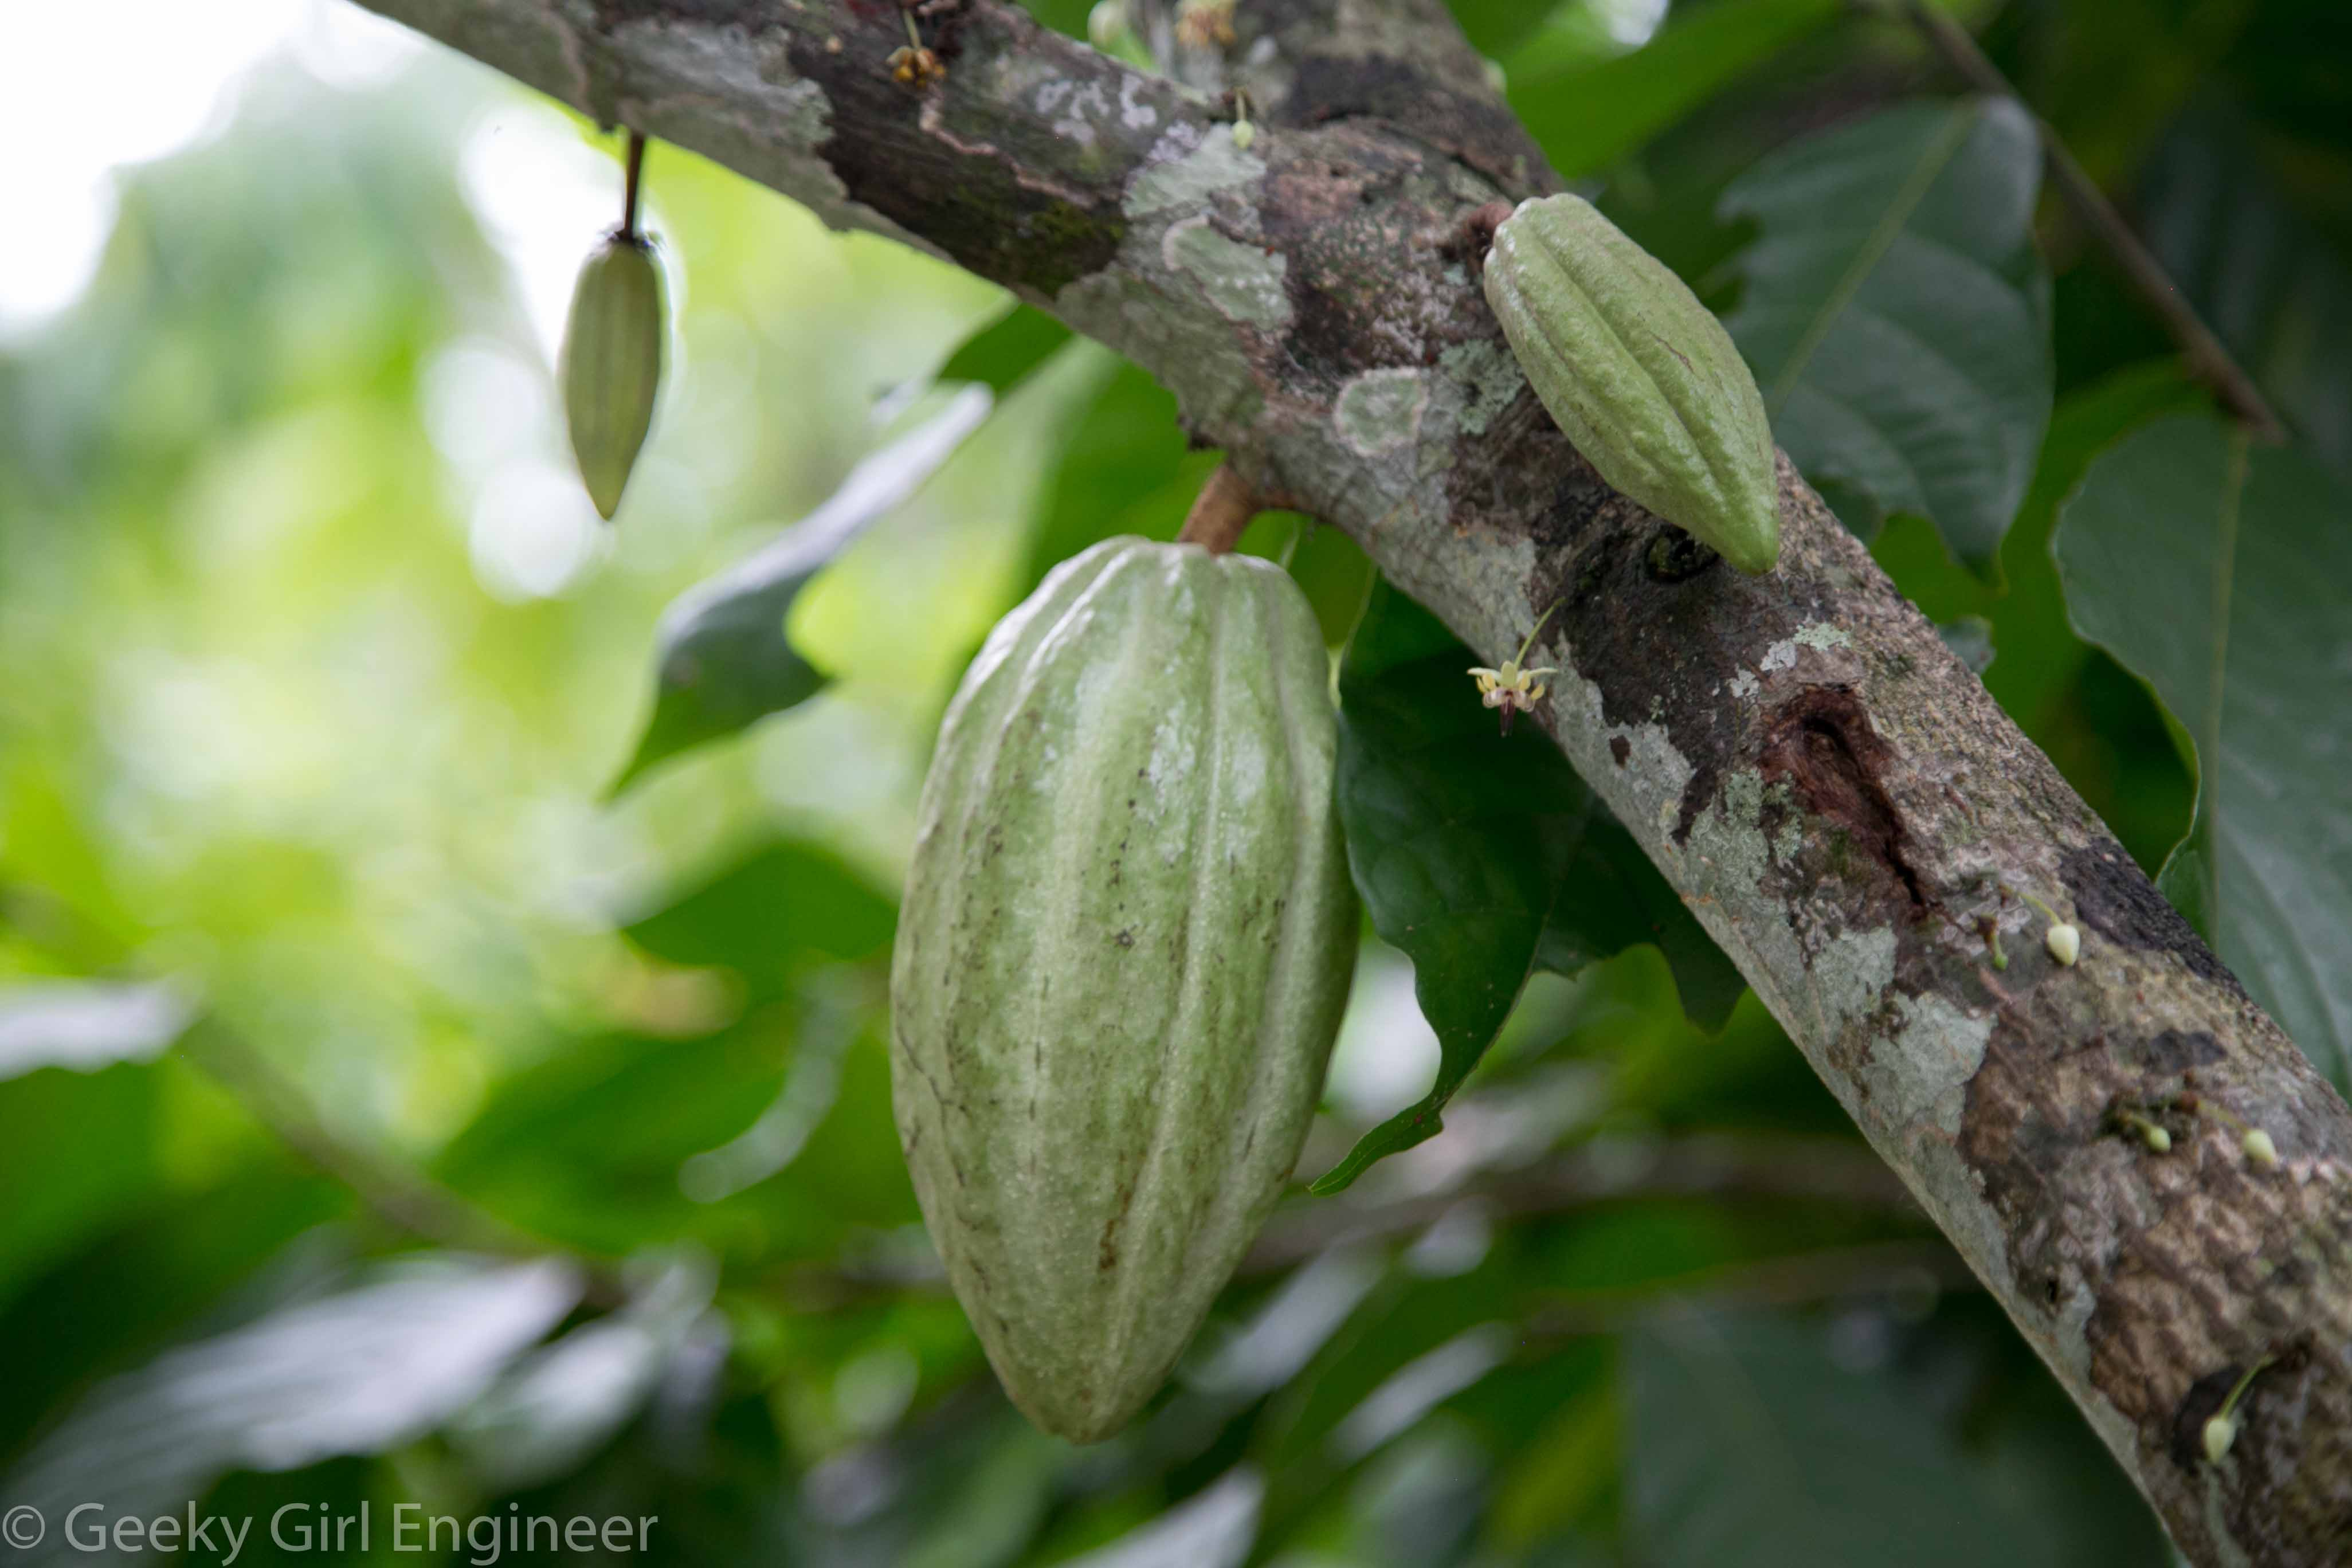 Unripe cacao fruit or seed pod